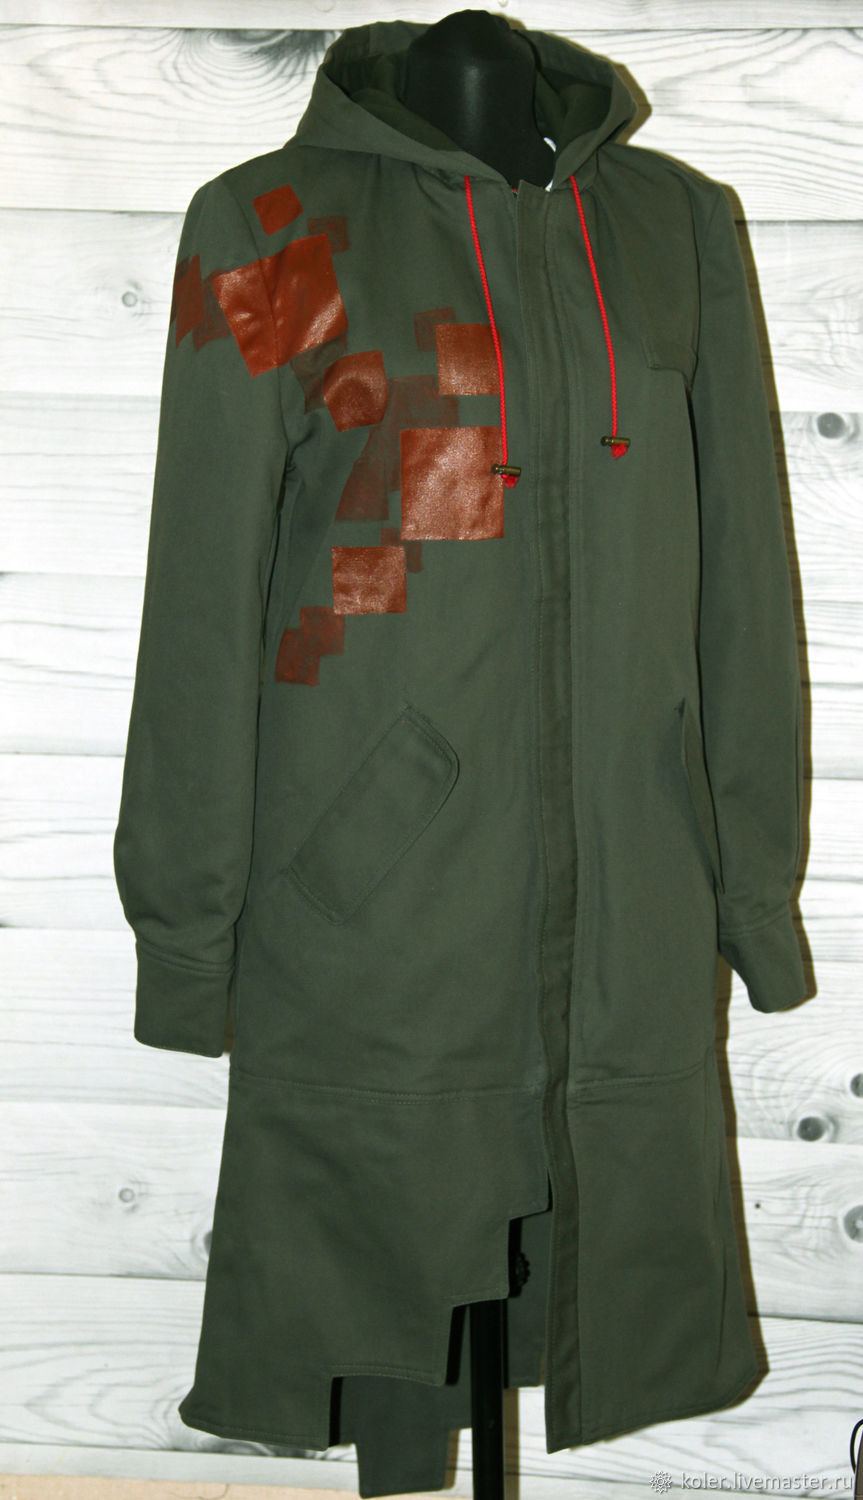 Parka for cosplay by anime Nagito Danganronpa by hand painted, Parkas jacket, St. Petersburg,  Фото №1